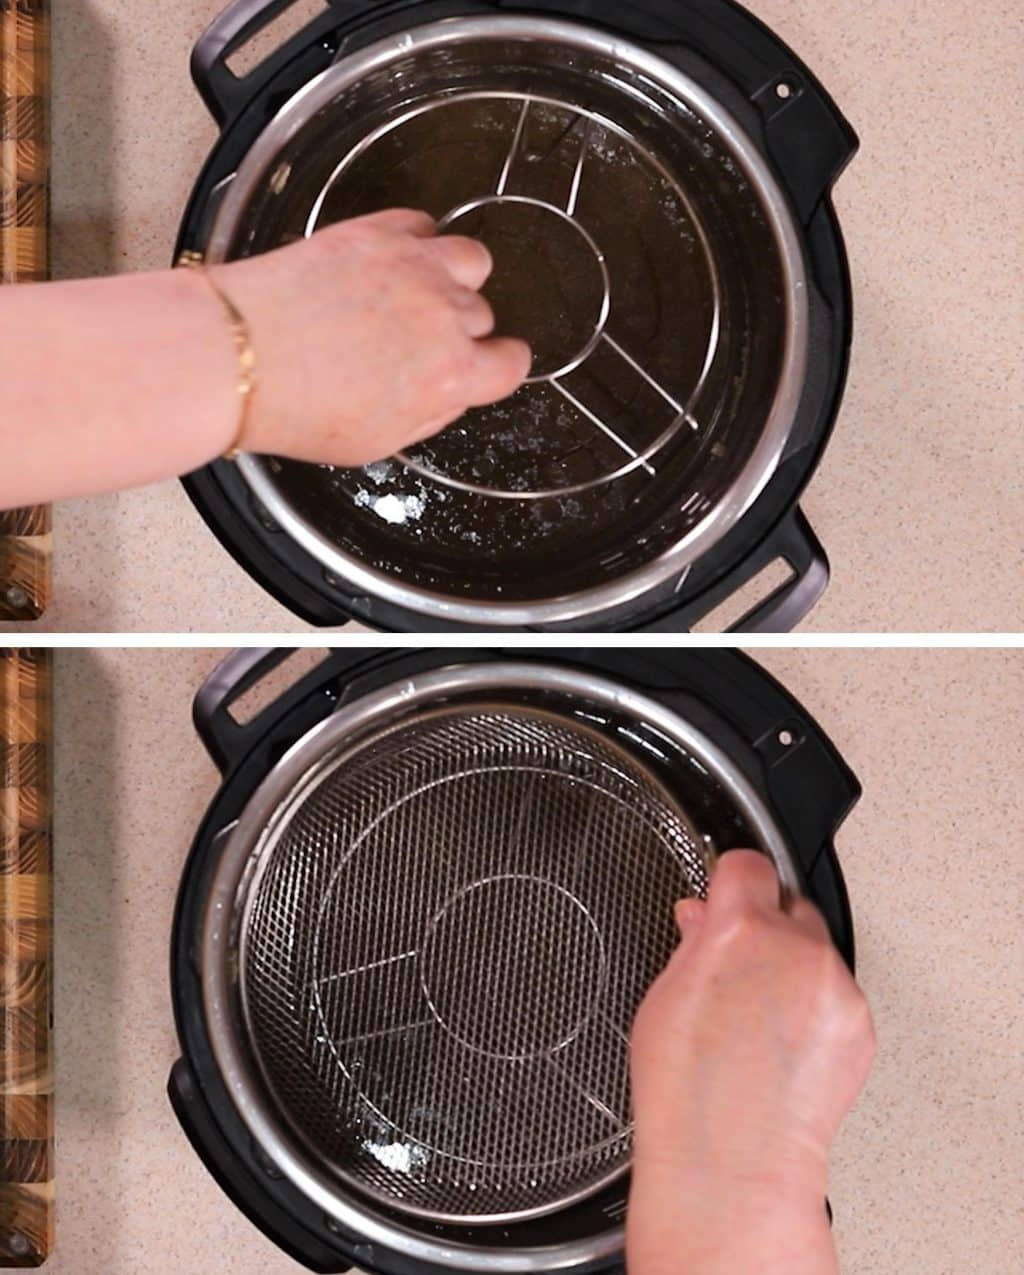 Place Trivet and CrispLid Basket into Instant Pot